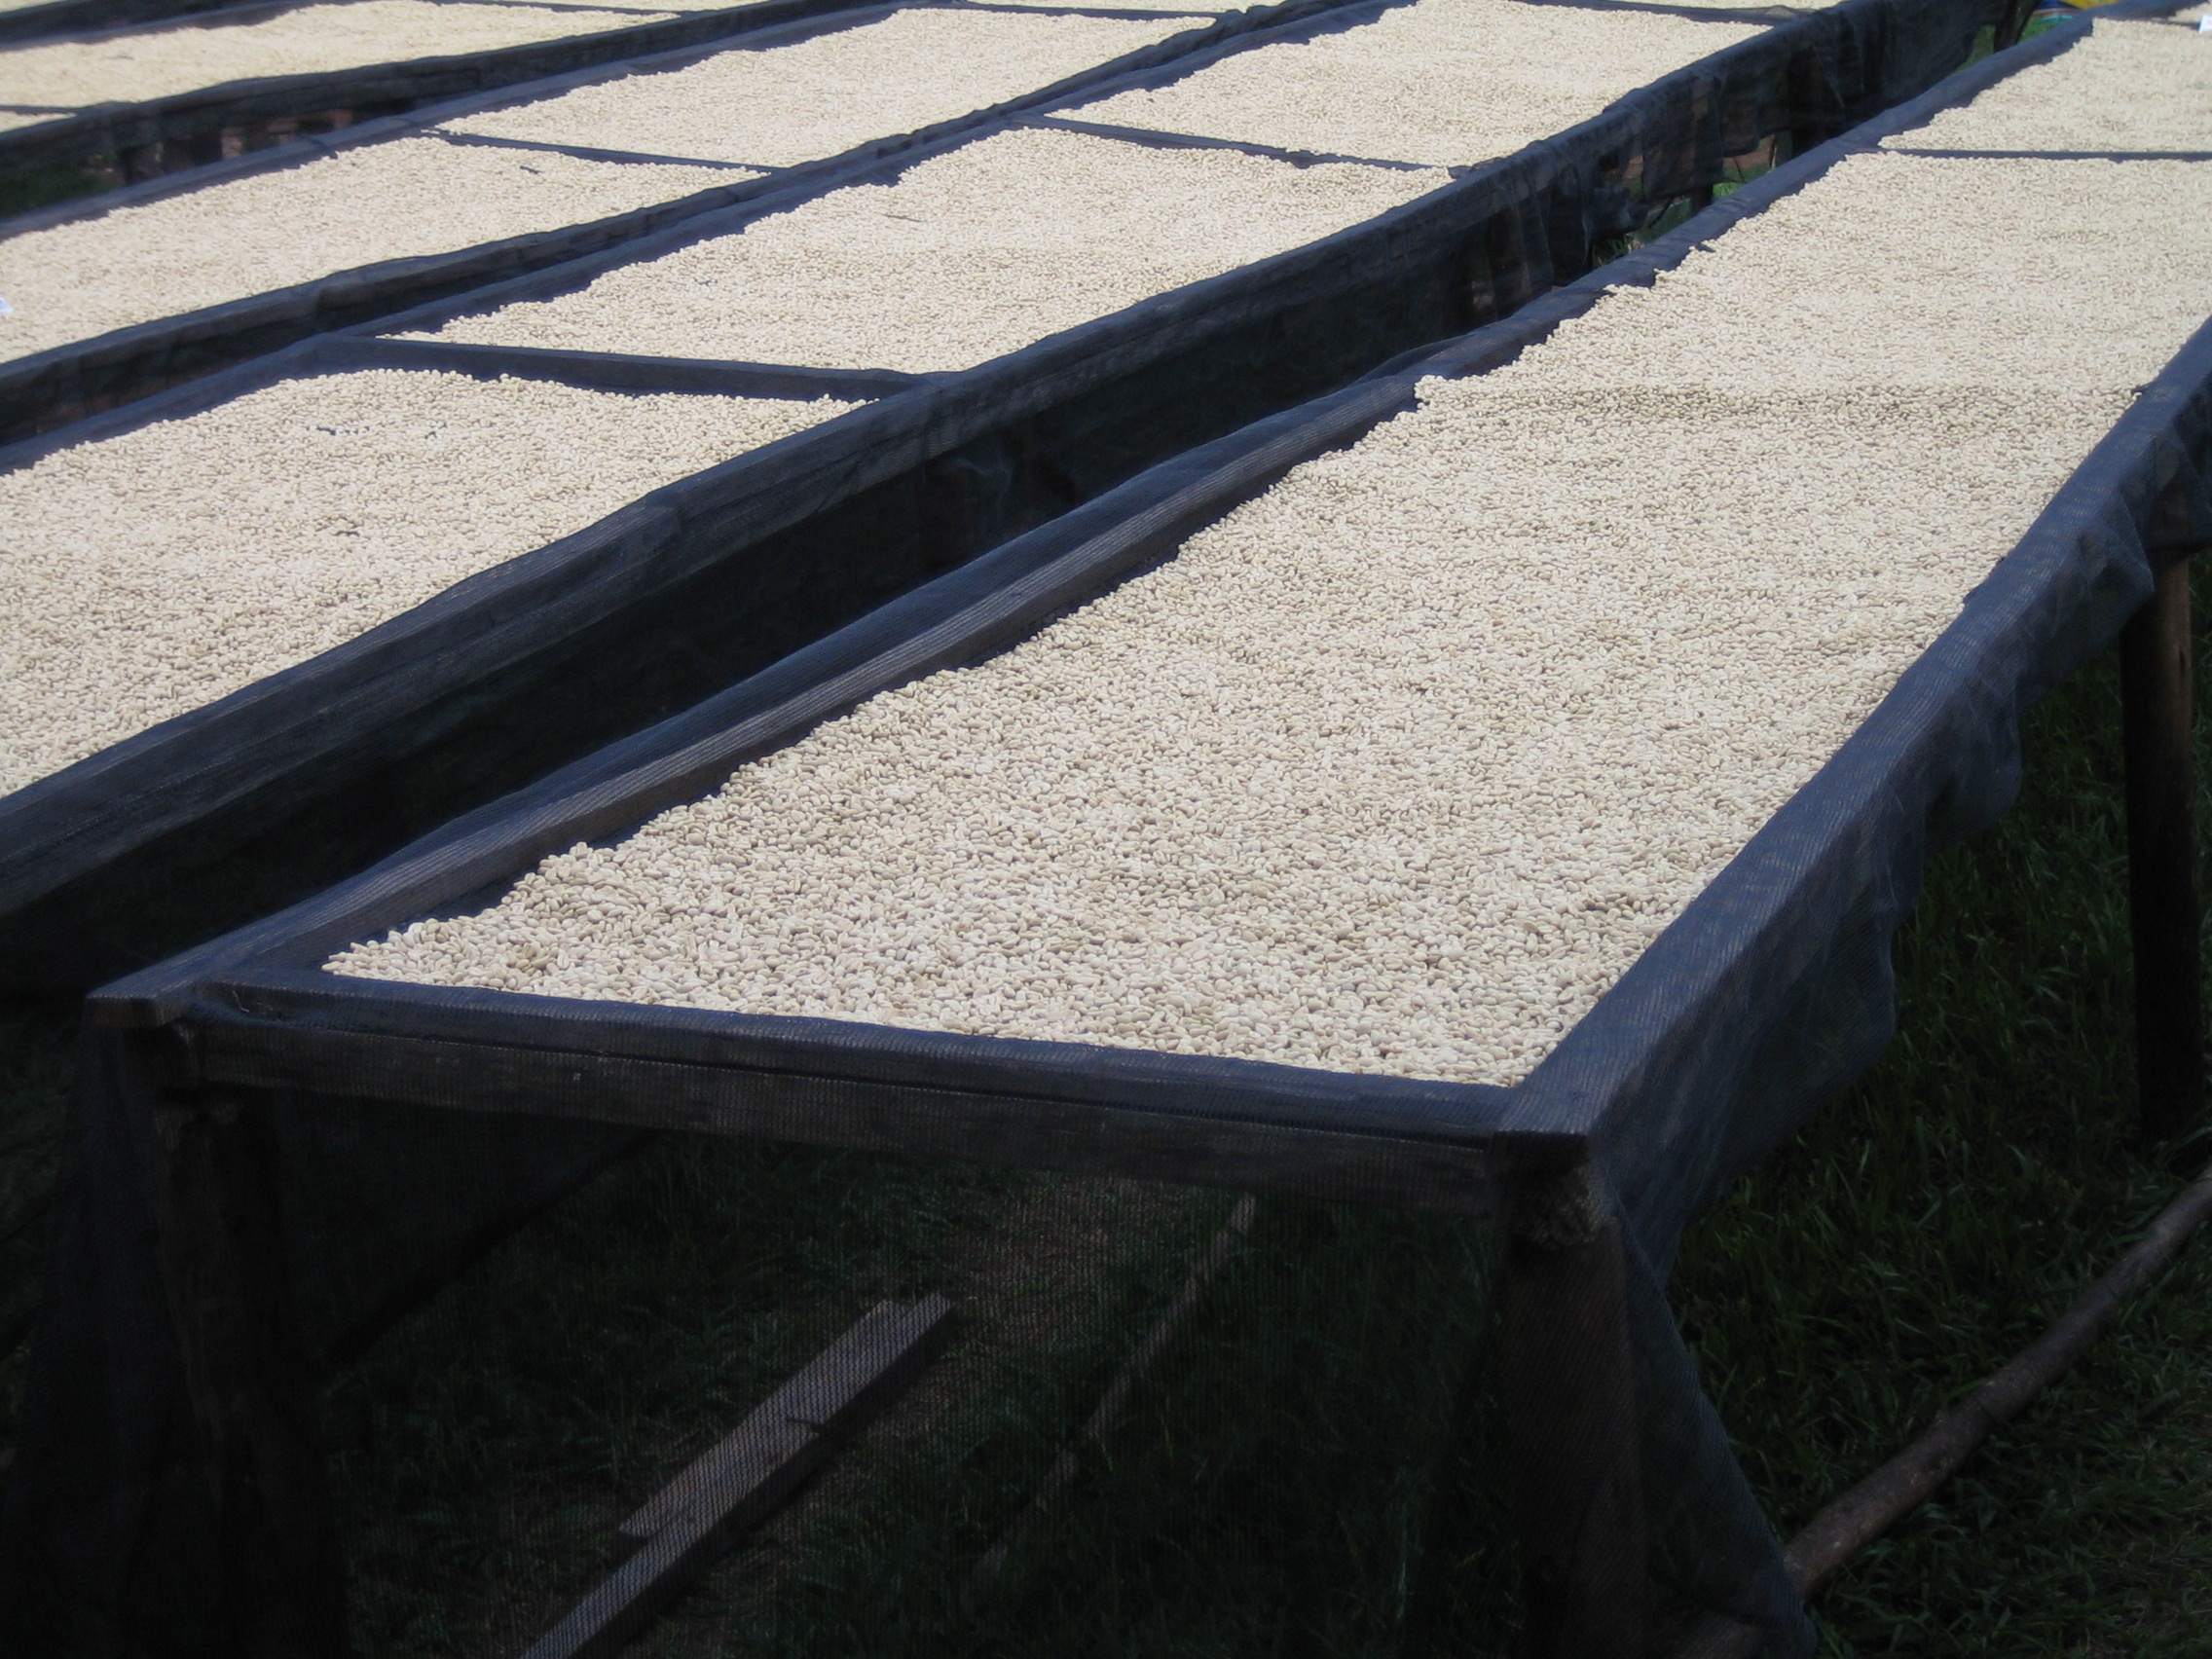 Photograph of four drying racks containing white coloured unroasted coffee beans